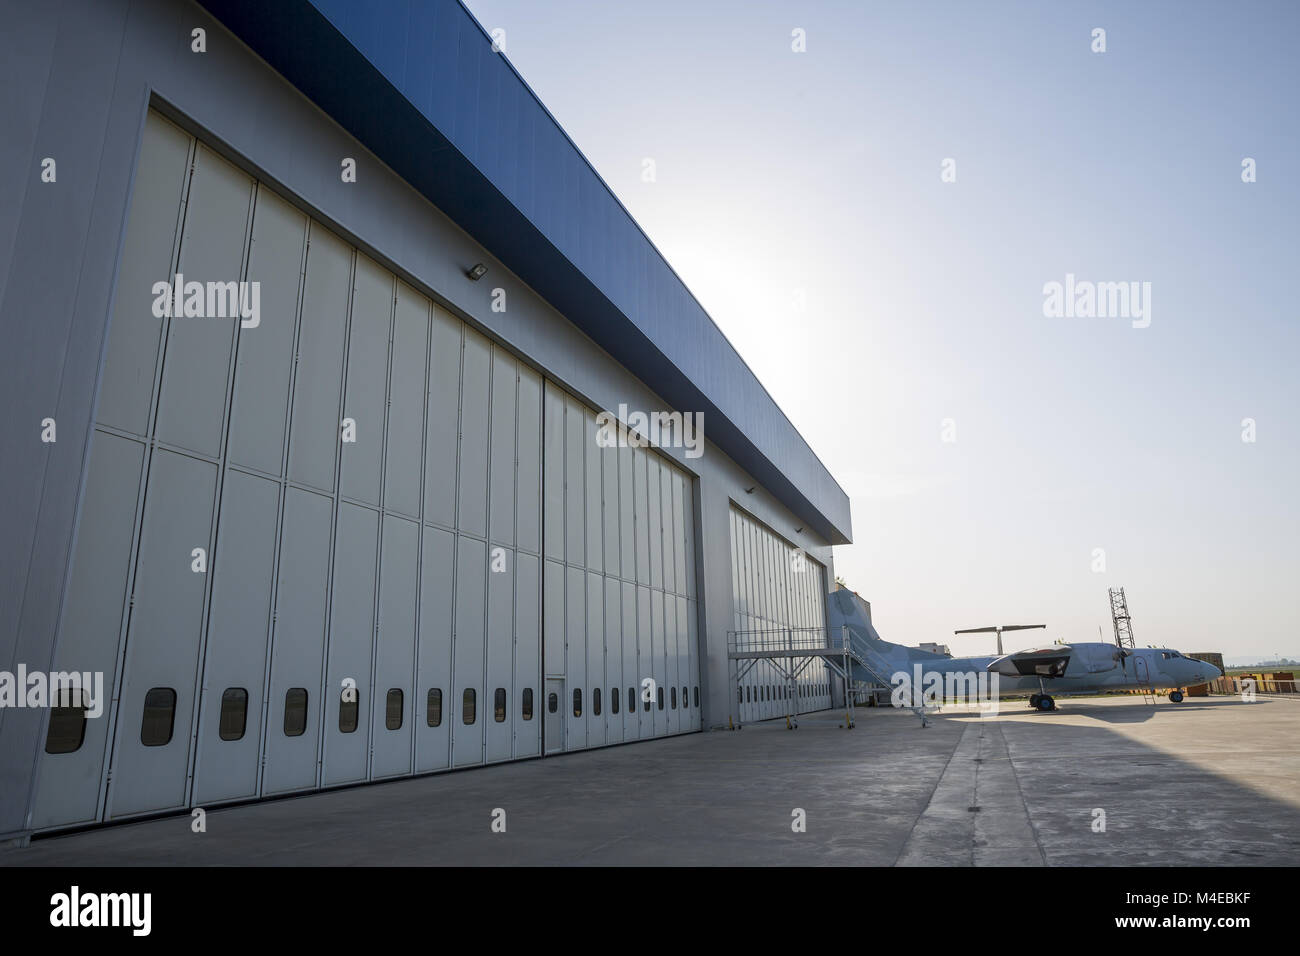 Airport hangar from the outside - Stock Image